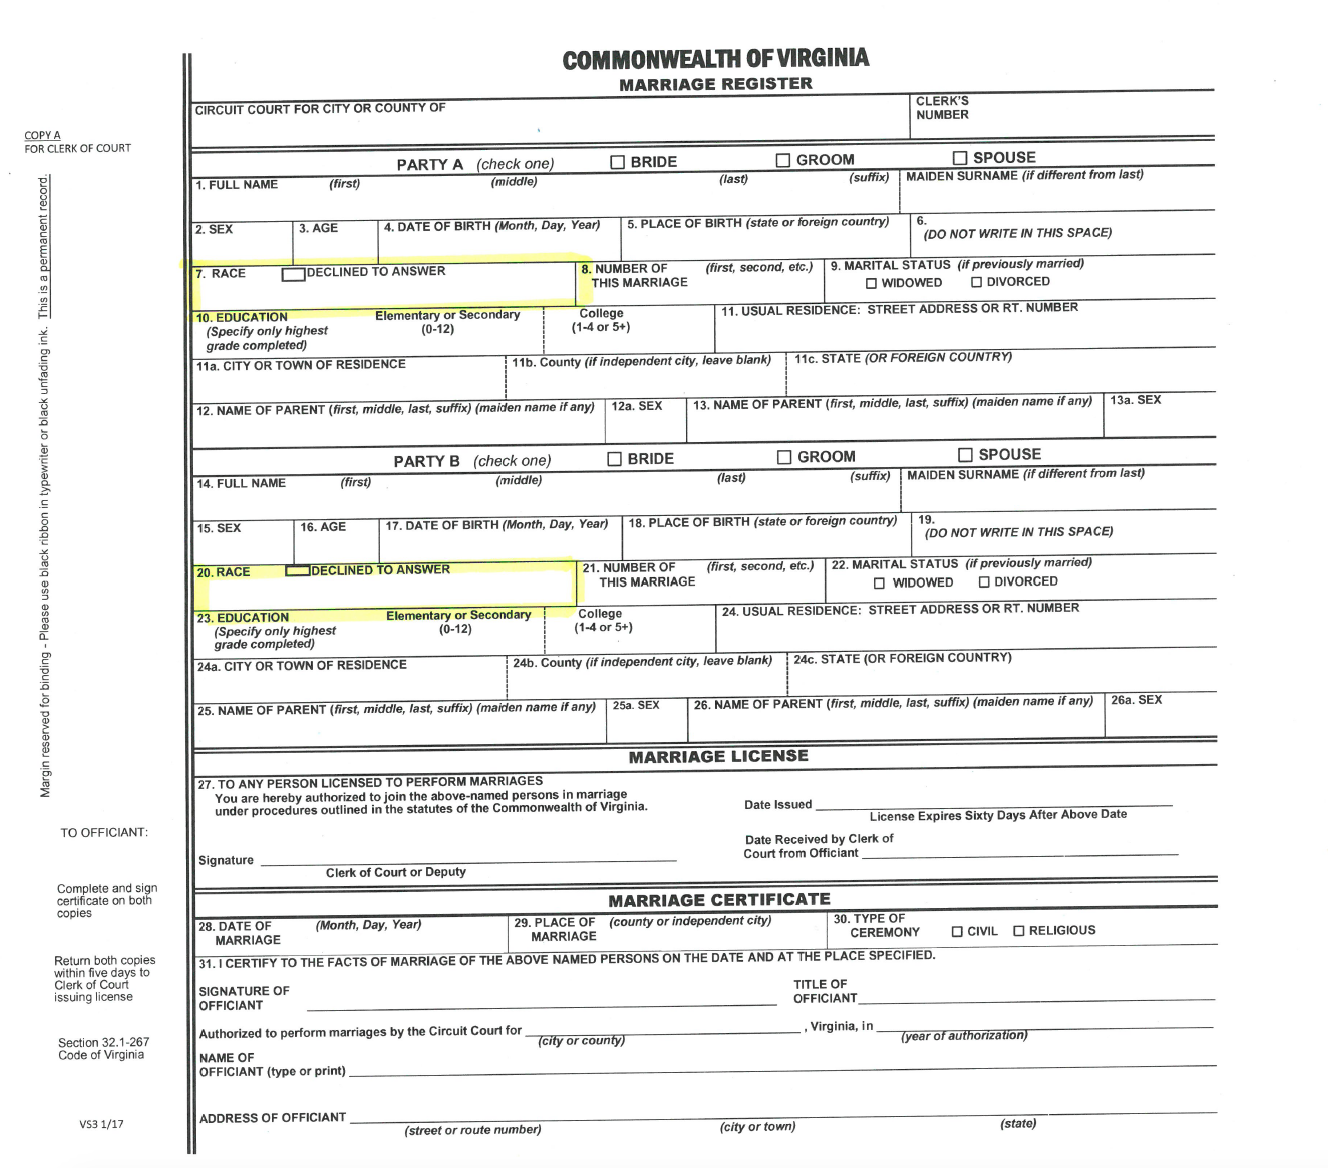 Couples Can Now Decline to List Their Race on Virginia Marriage License Applications